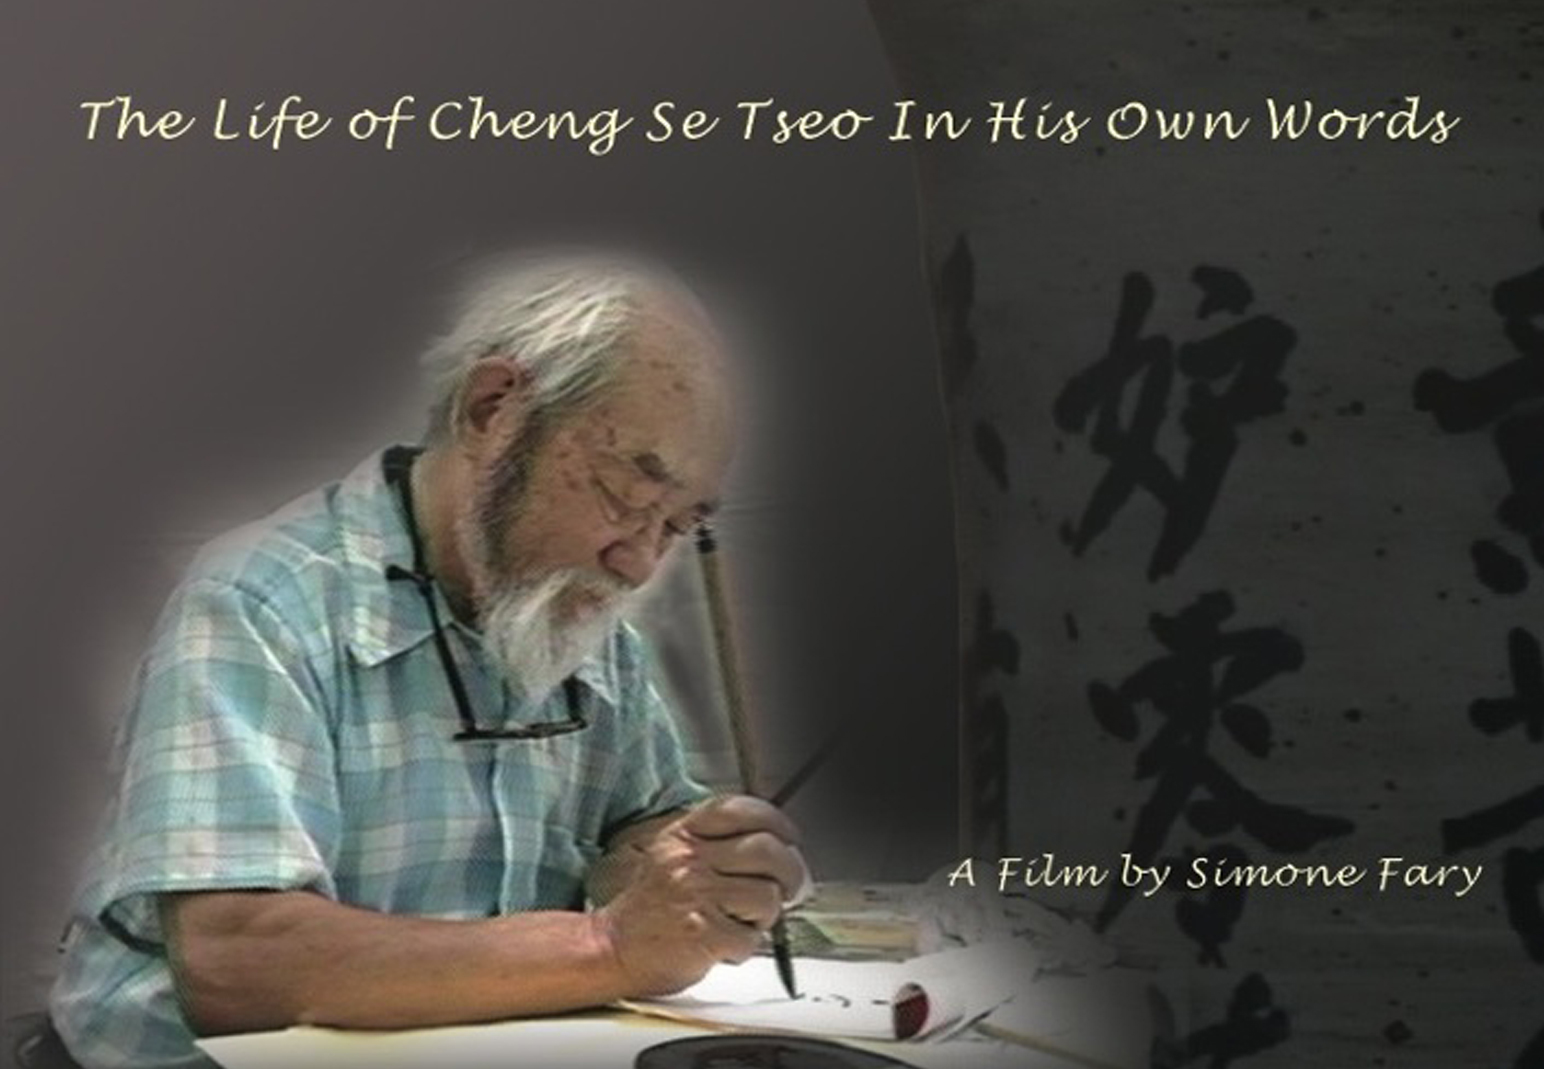 The Life of Cheng Se Tseo in His Own Words WordPress Website